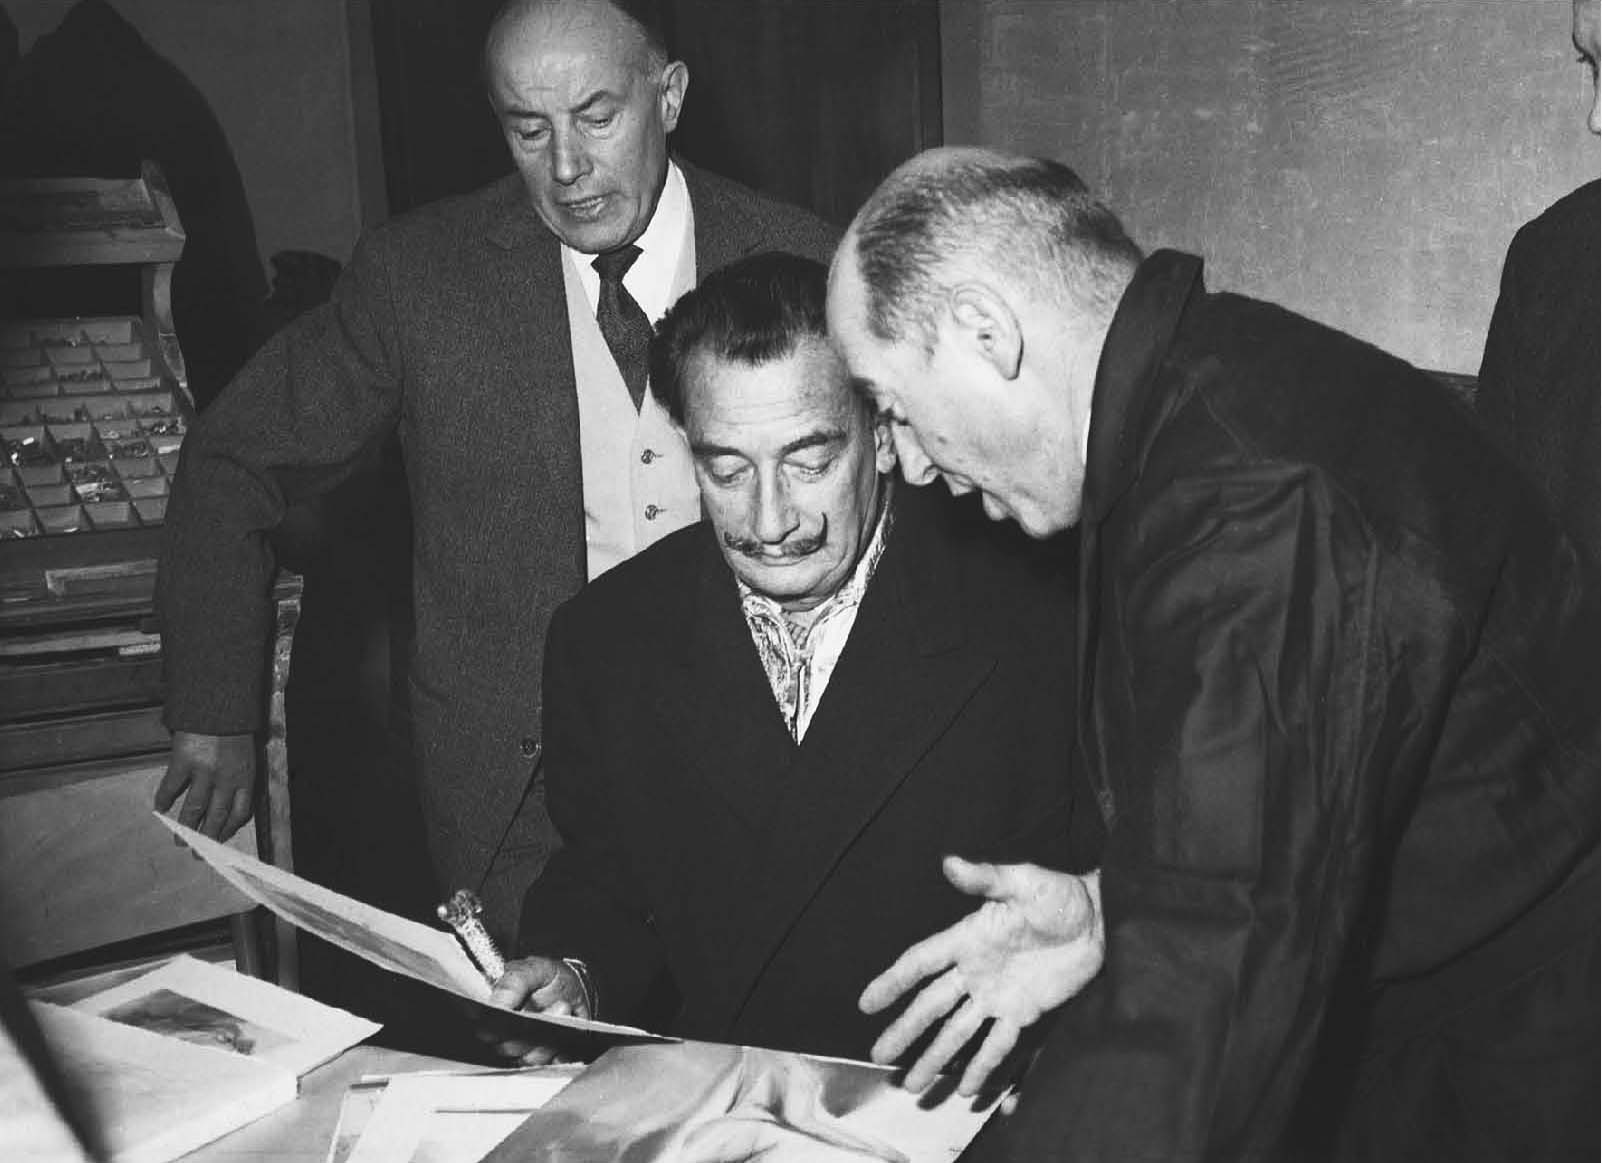 """Joseph Forêt, Salvador Dalí, and the engraver, Raymond Jacquet, examining one of the engravings from """"The Divine Comedy."""" (Photo credit: Eduard Fornés)"""